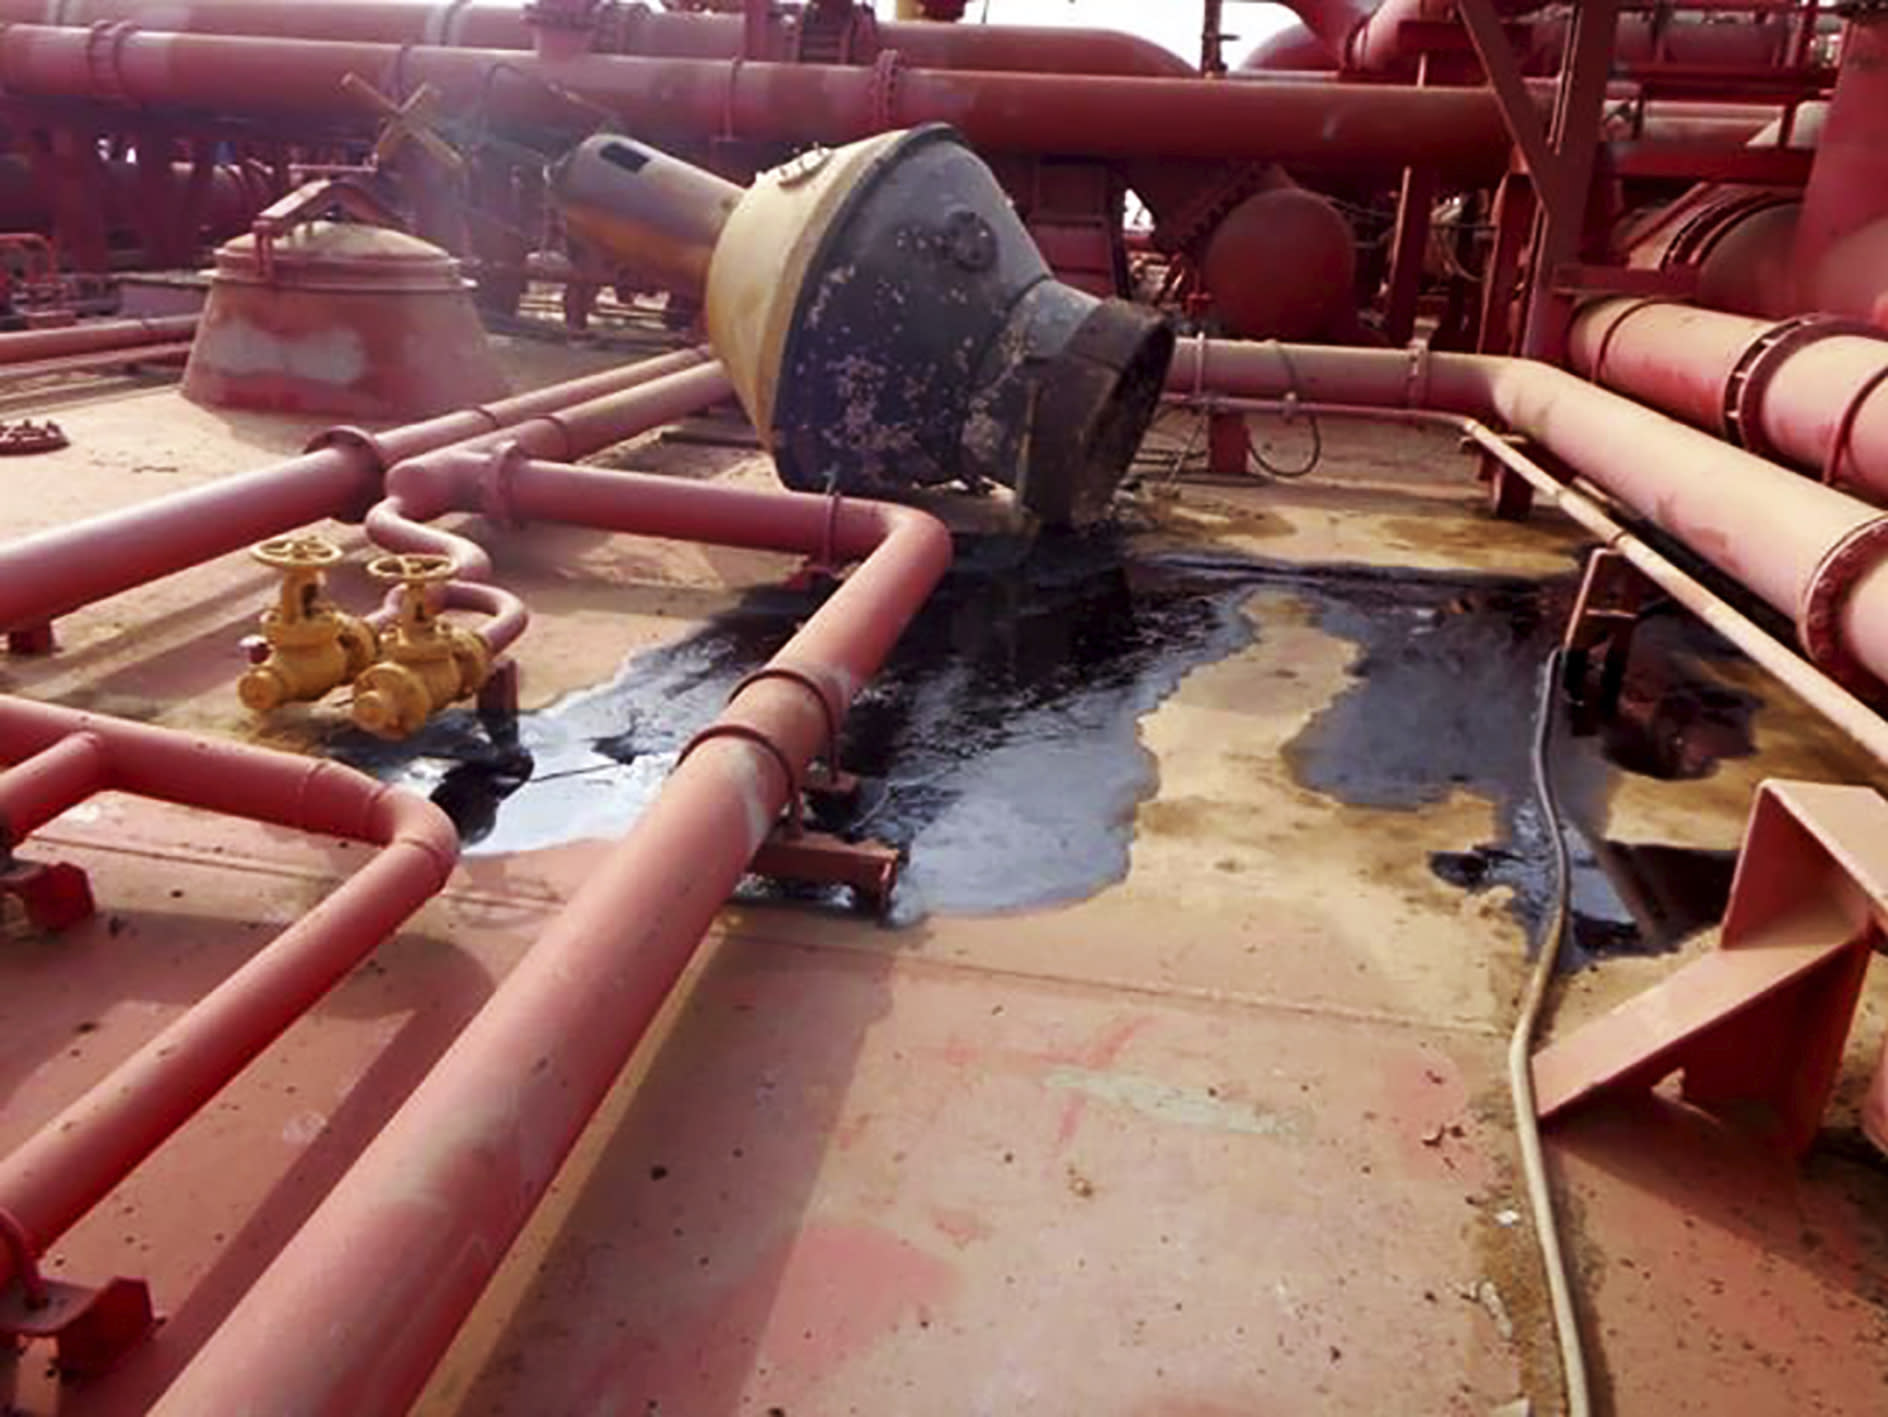 This image provided by I.R. Consilium taken in 2019, shows the deck of the FSO Safer, indicating the lack of basic maintenance for several years, leading to incidental smaller spills, moored off Ras Issa port, Yemen. Houthi rebels are blocking the United Nations from inspecting the abandoned oil tanker loaded with more than one million barrels of crude oil. UN officials and experts fear the tanker could explode or leak, causing massive environmental damage to Red Sea marine life. (I.R. Consilium via AP)